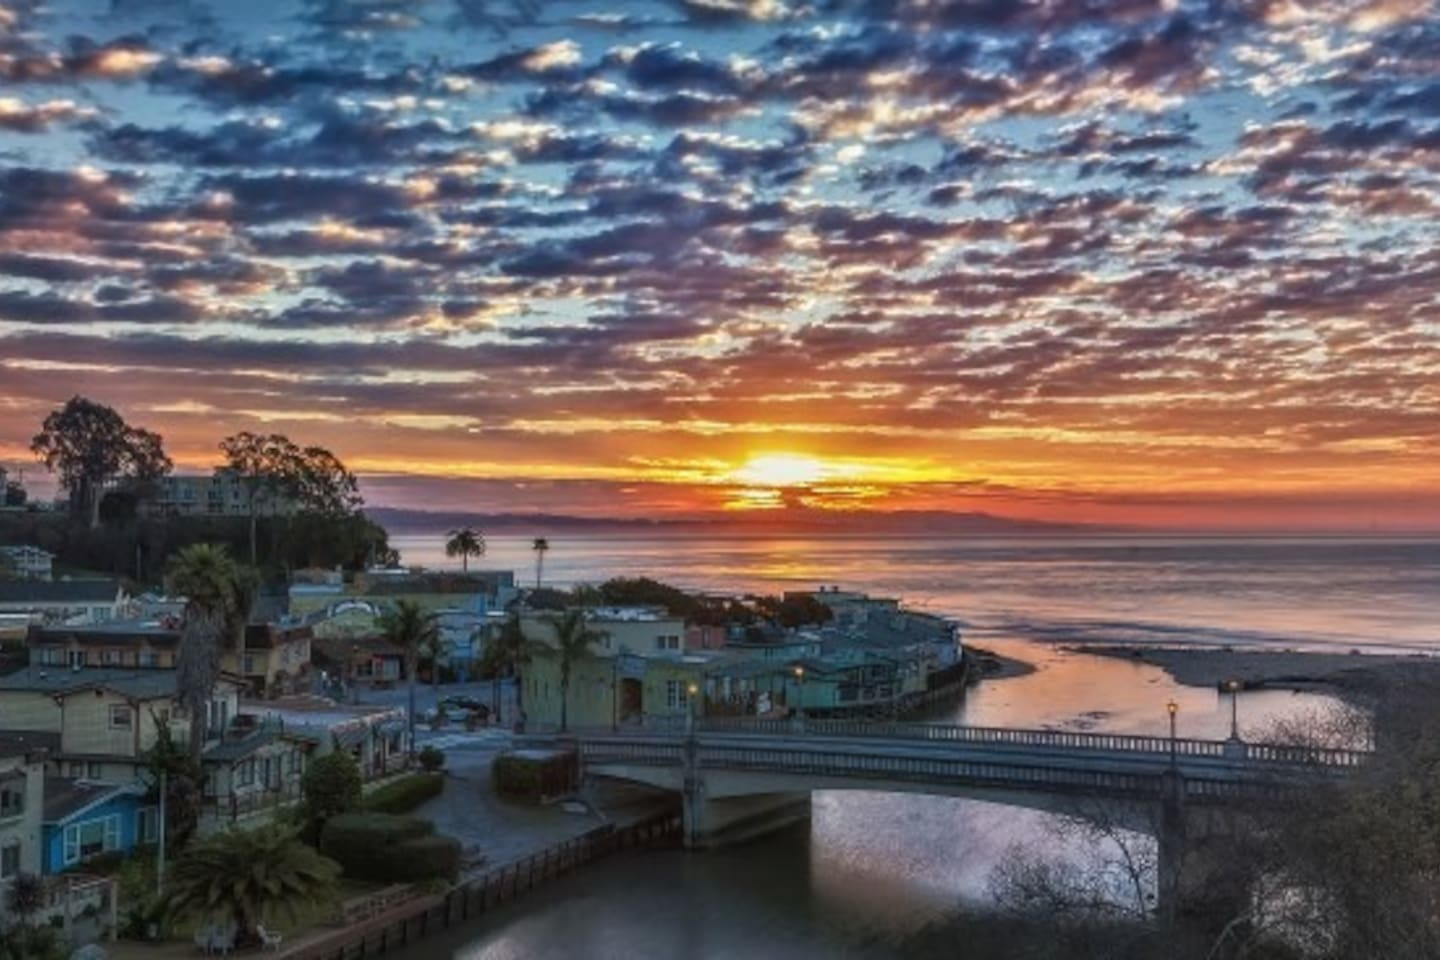 30 minute walk to beautiful Capitola Village for restaurants, shopping and the beach.